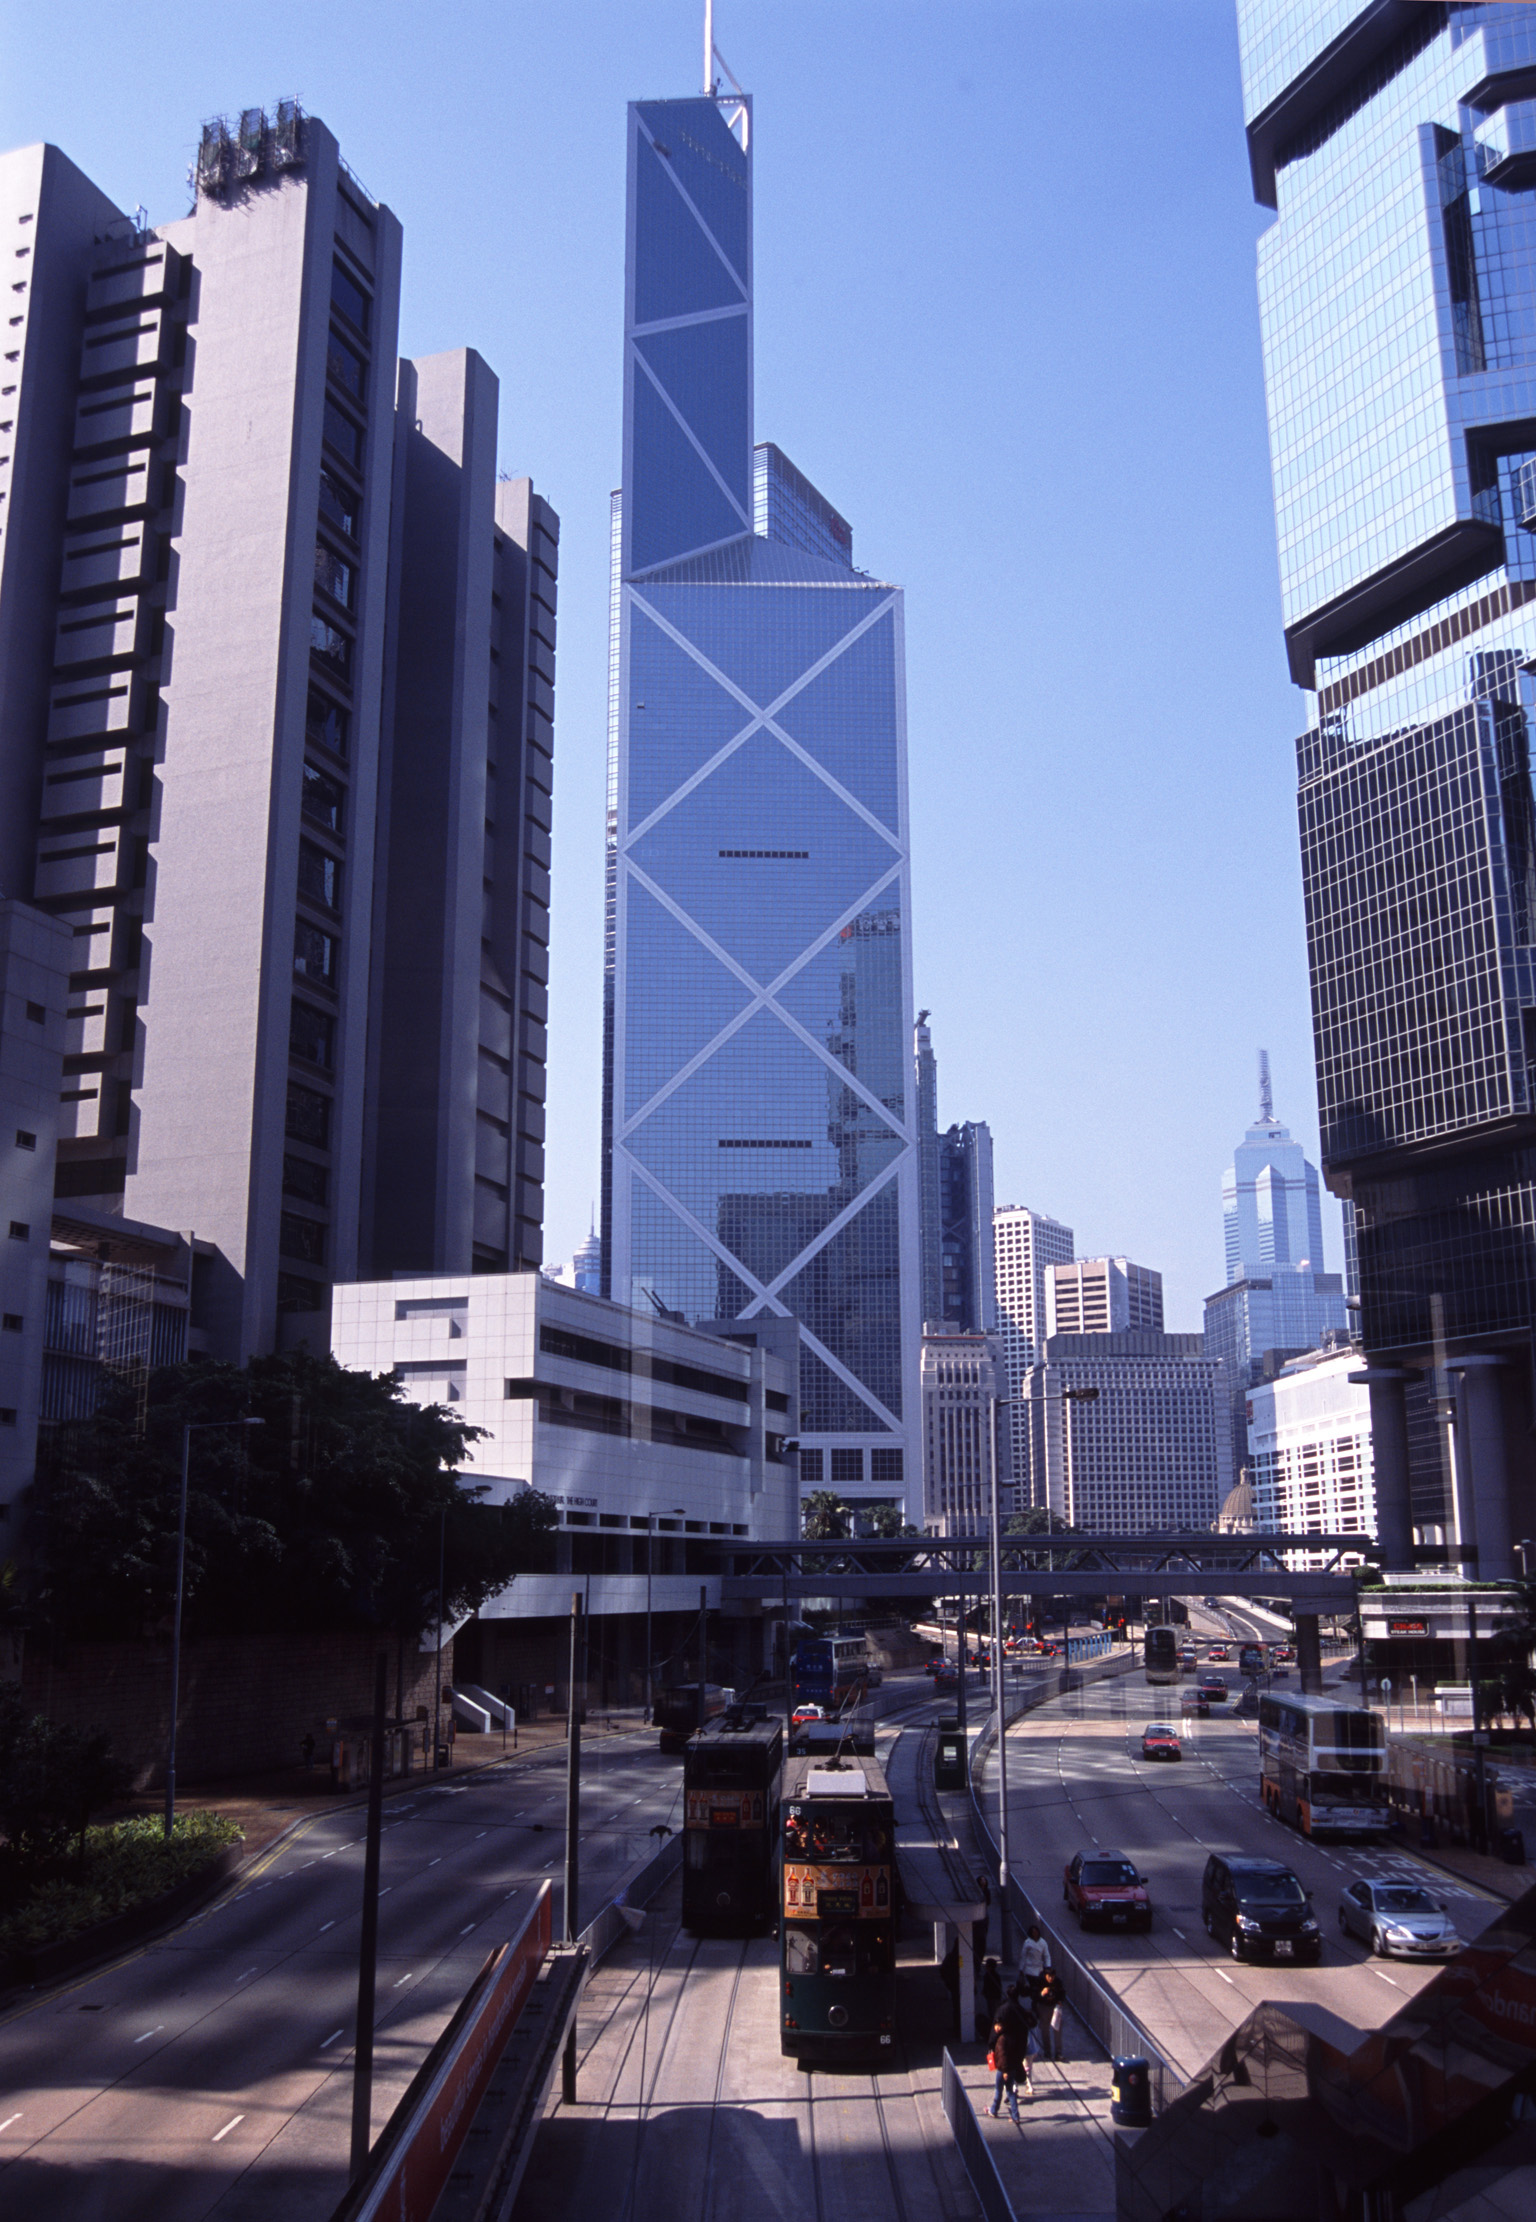 Day Light City View at Hong Kong China with High Architectural Towers, Cars and Trams.